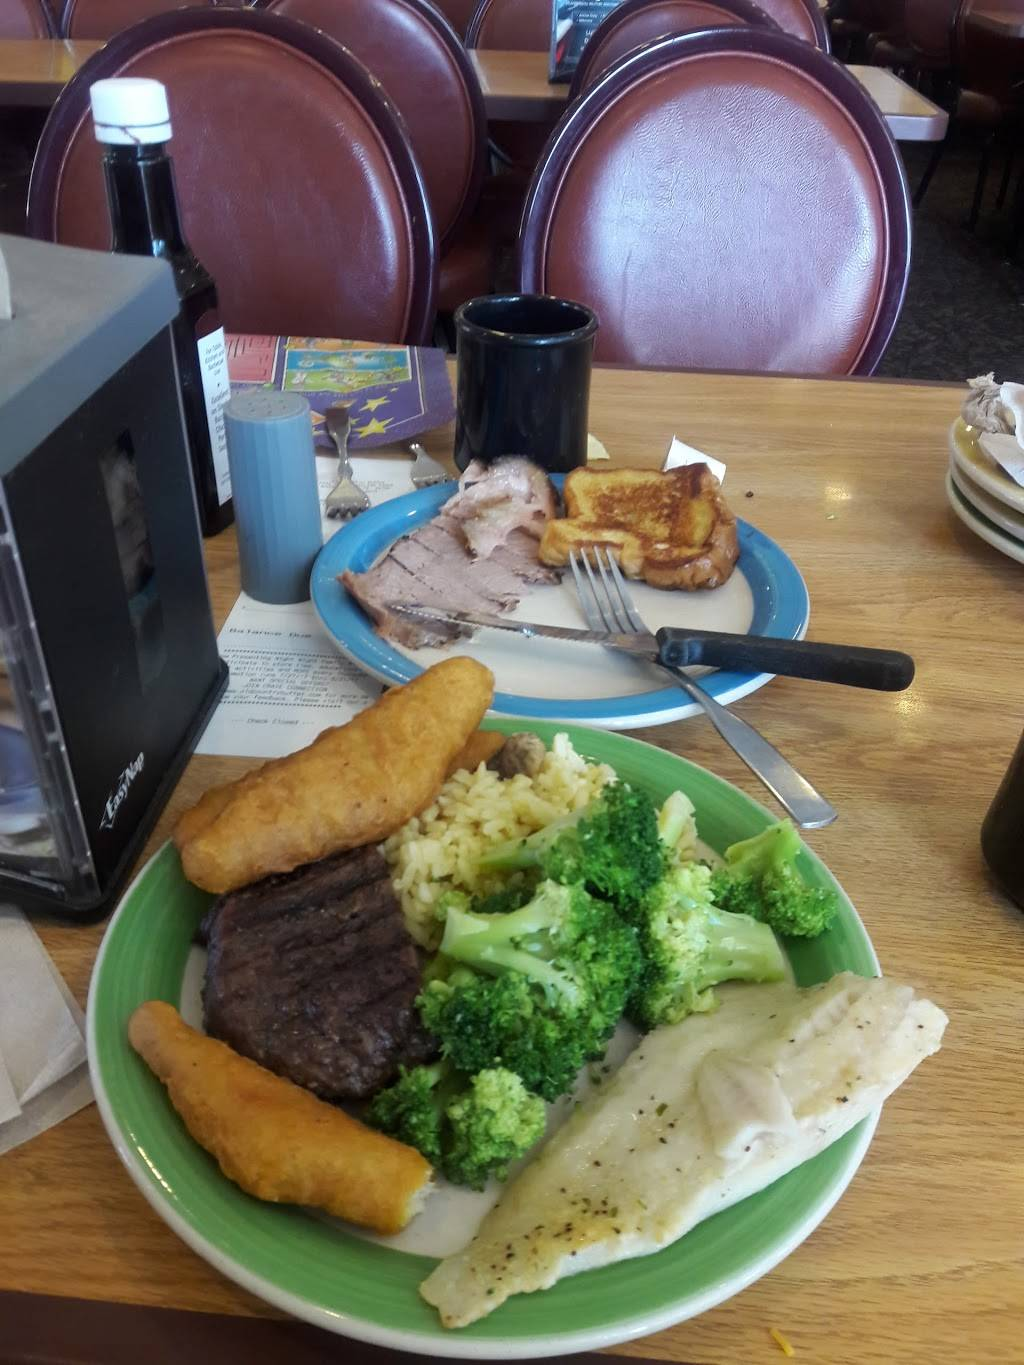 Surprising Old Country Buffet Restaurant 2942 Prince William Pkwy Best Image Libraries Barepthycampuscom